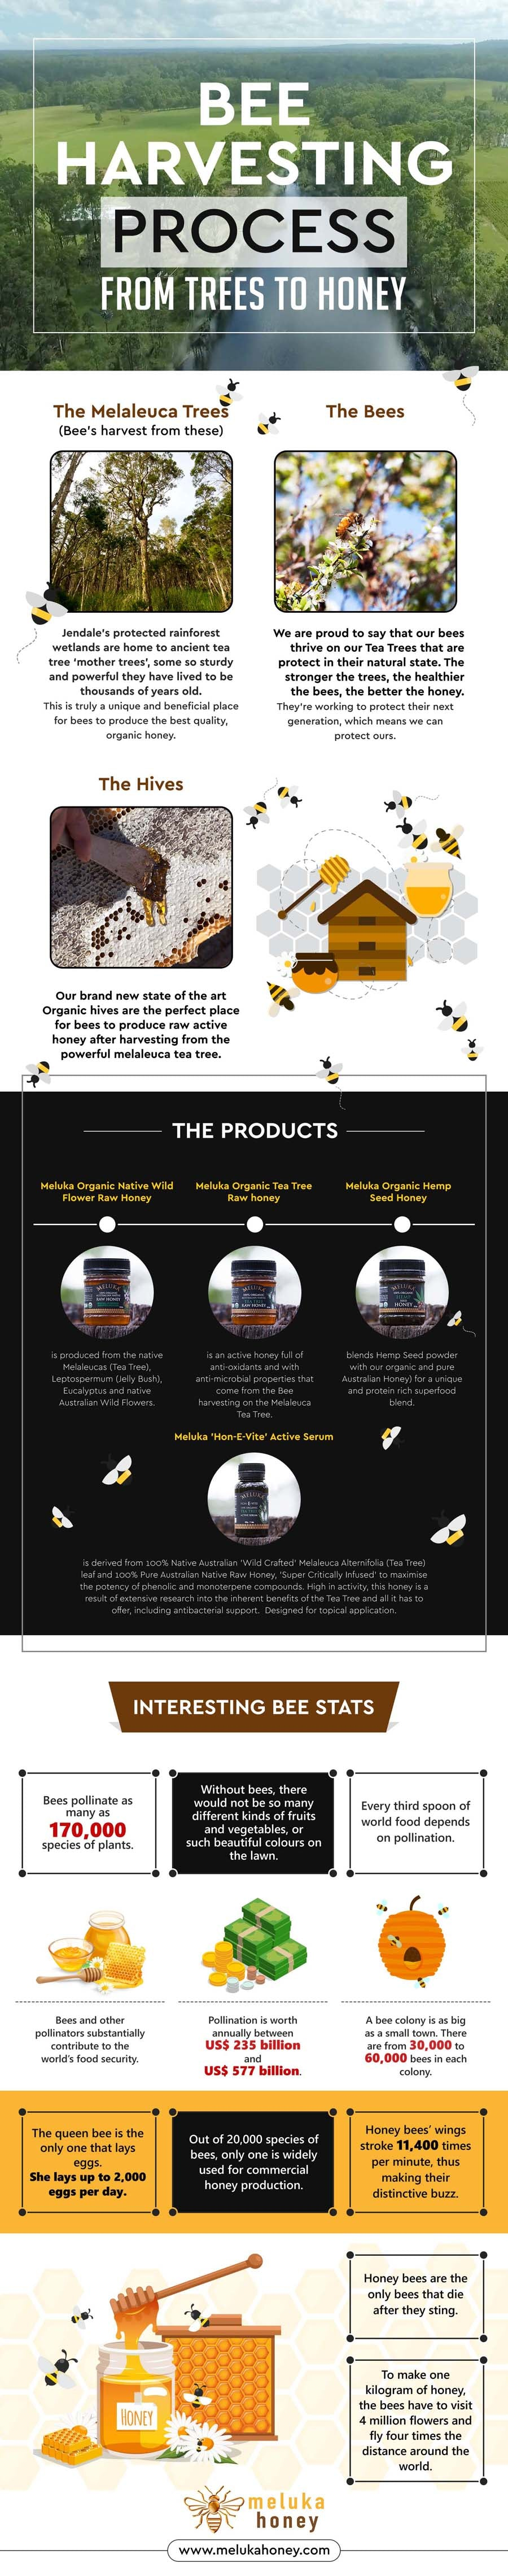 Meluka Honey - Bee Harvesting Process From Trees To Honey